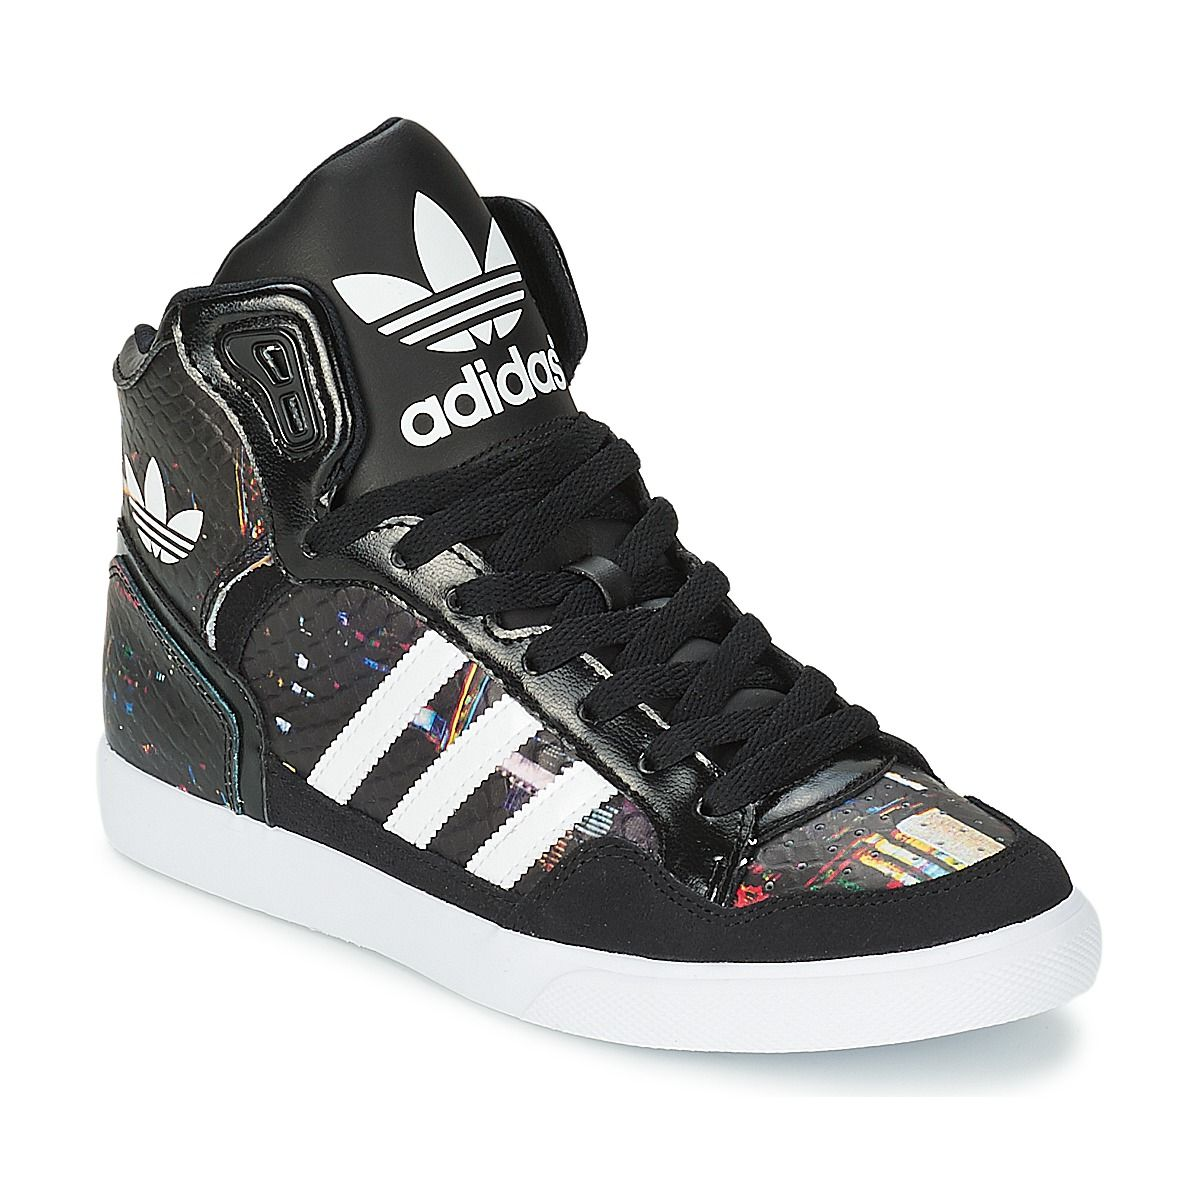 Baskets montantes Adidas Originals Extaball W